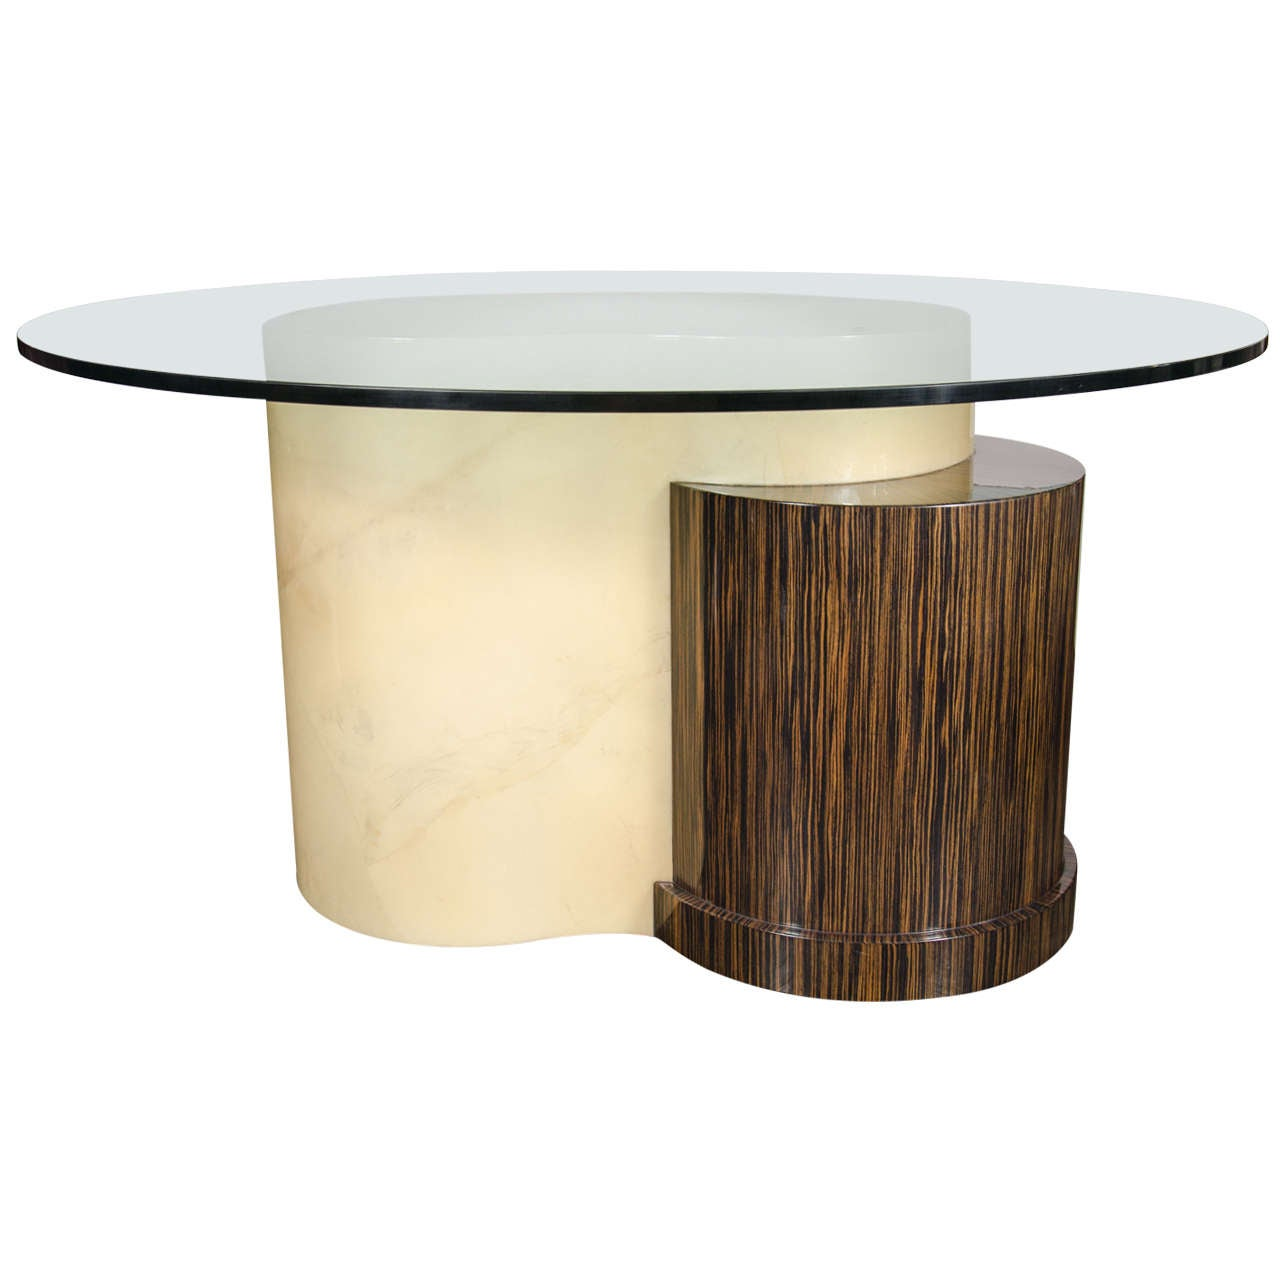 Mid-Century Modernist Lacquered Goatskin, Glass and Macassar Dining Table